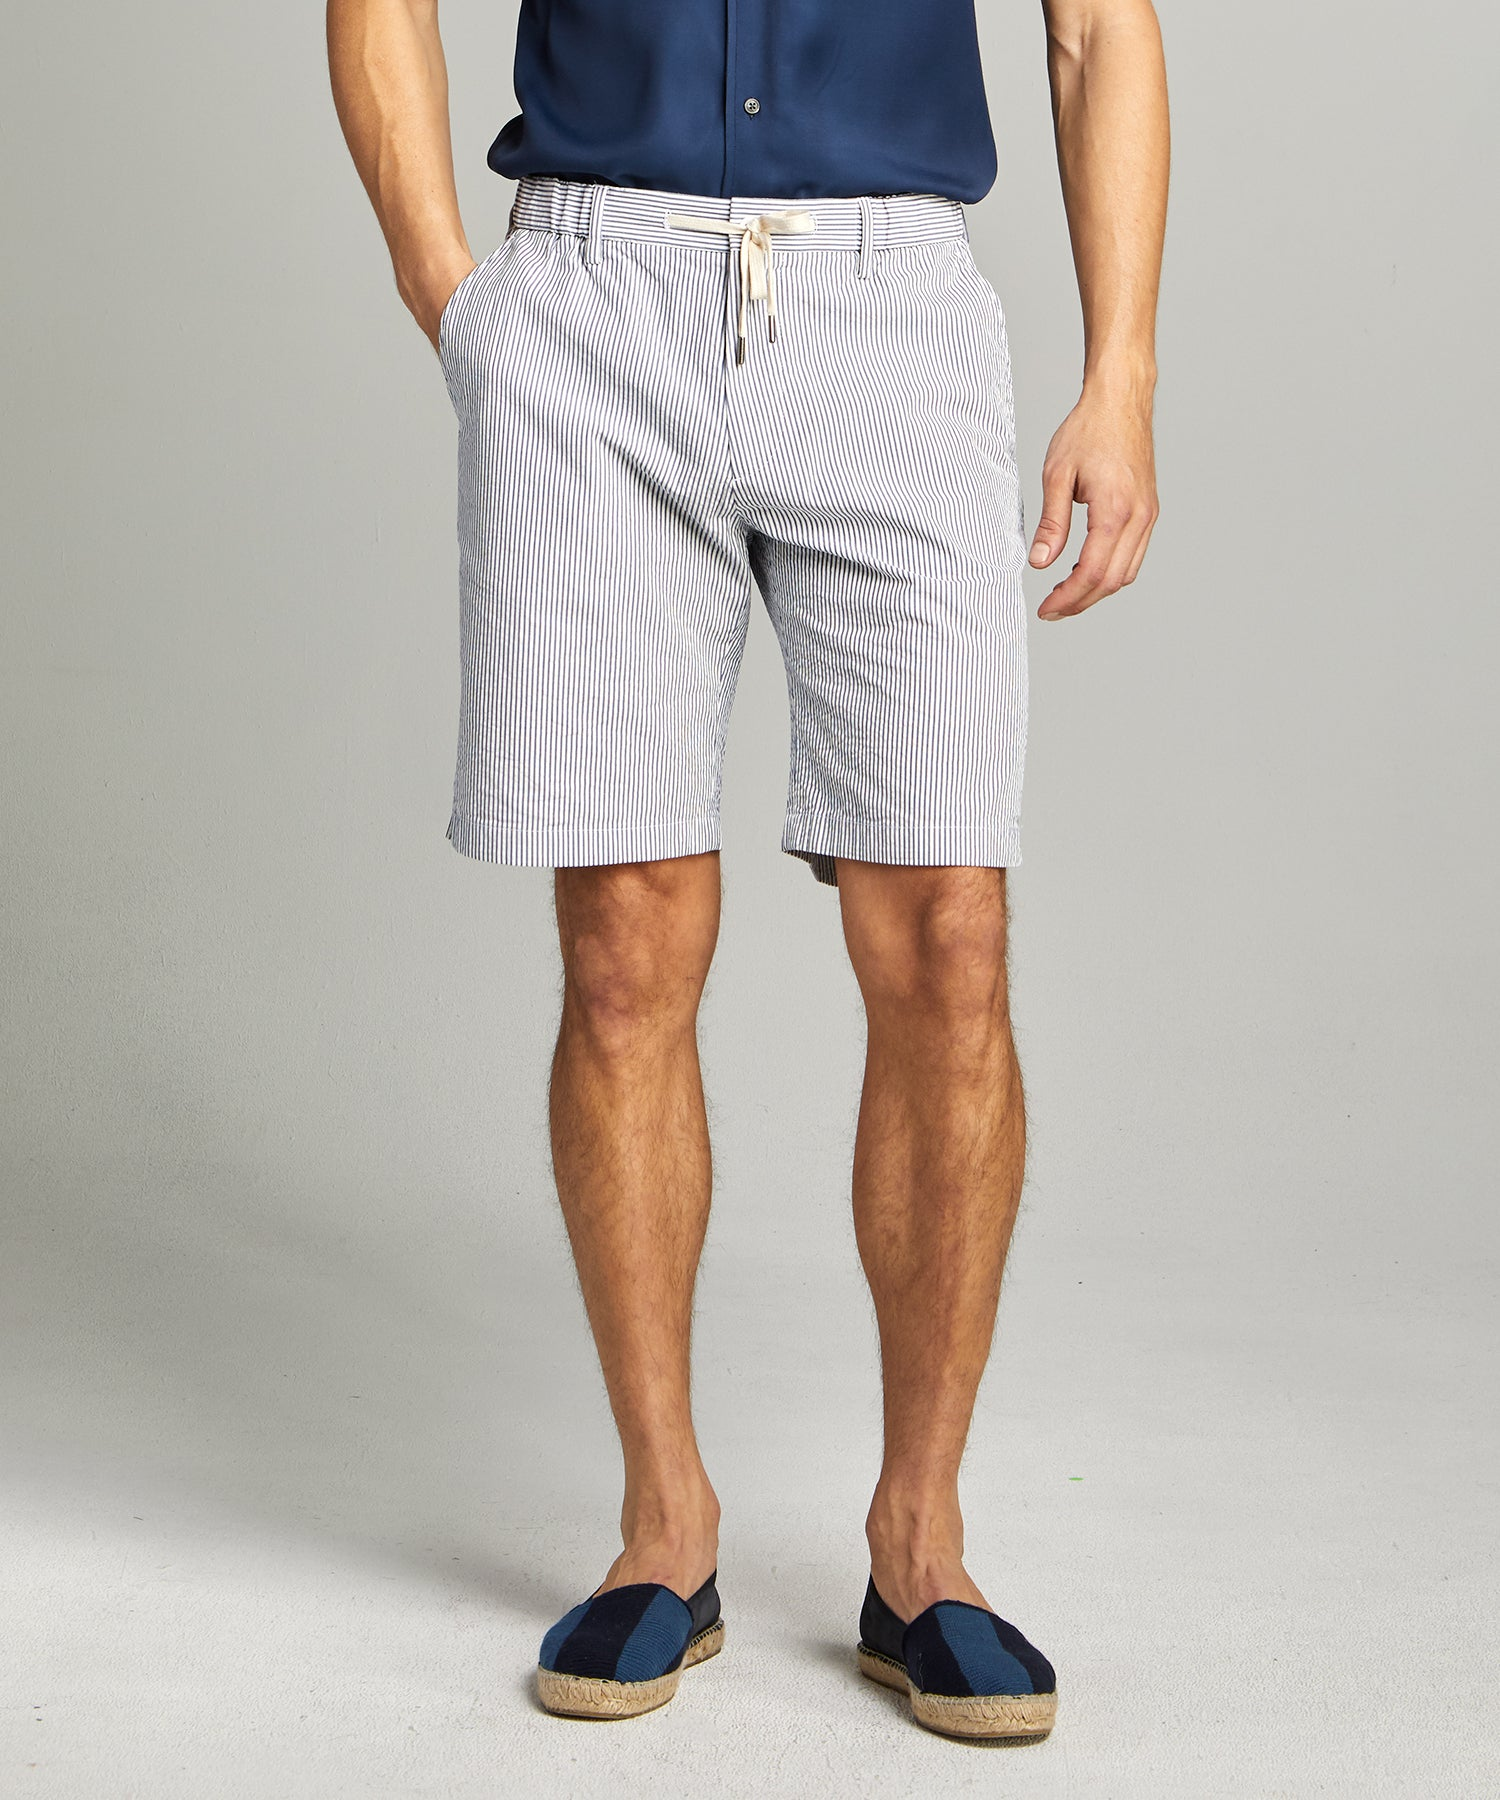 Seersucker Traveler Short in Blue